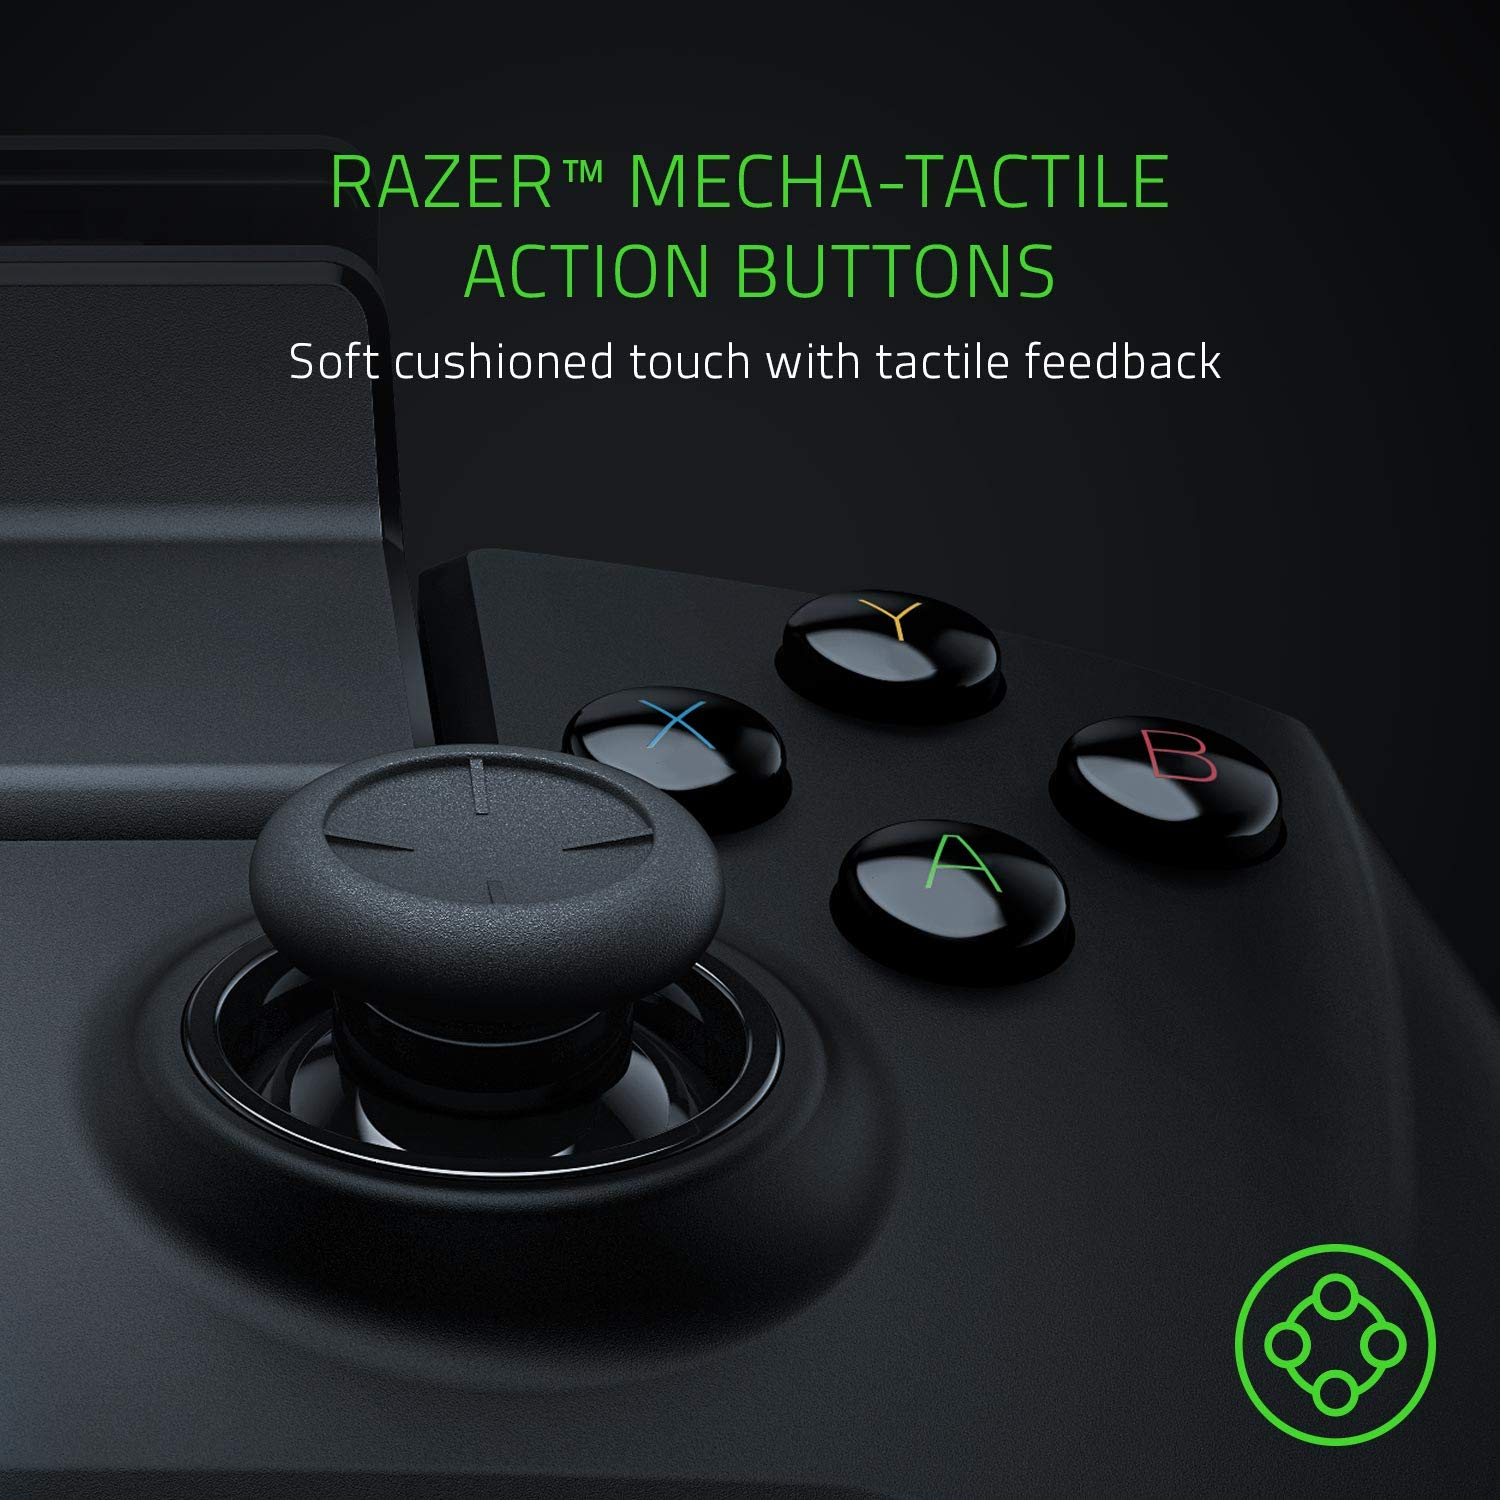 Amazon Com Razer Raiju Mobile Ergonomic Multi Function Button Layout Hair Trigger Mode Adjustable Phone Mount Mobile Gaming Controller Video Games Mobile gaming is still finding its way and the razer raiju mobile controller may be a step in that direction. amazon com razer raiju mobile